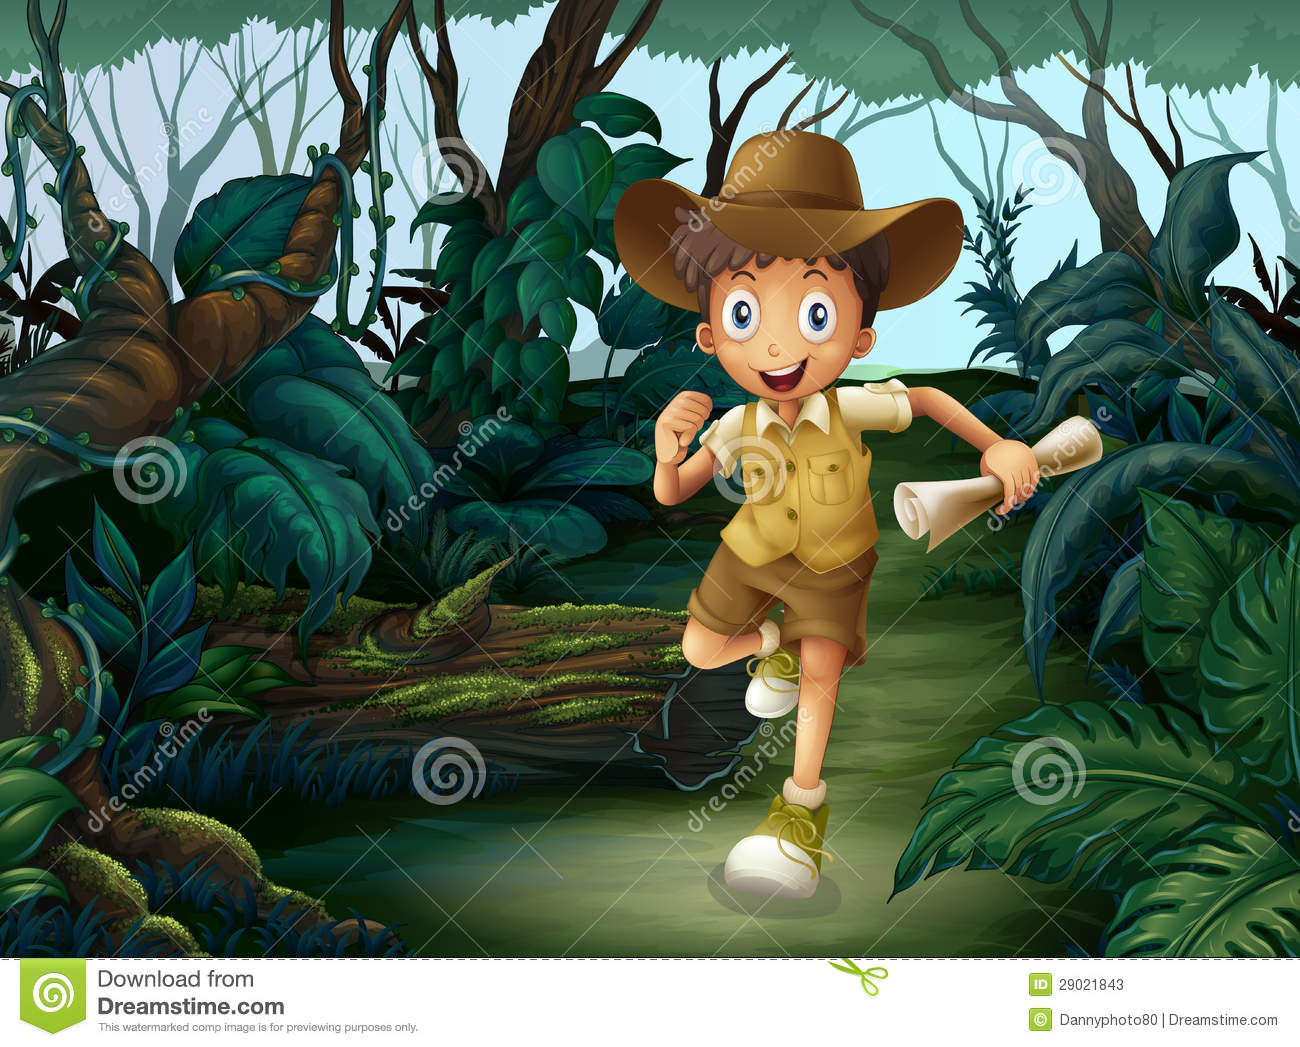 A young boy in the middle of the woods